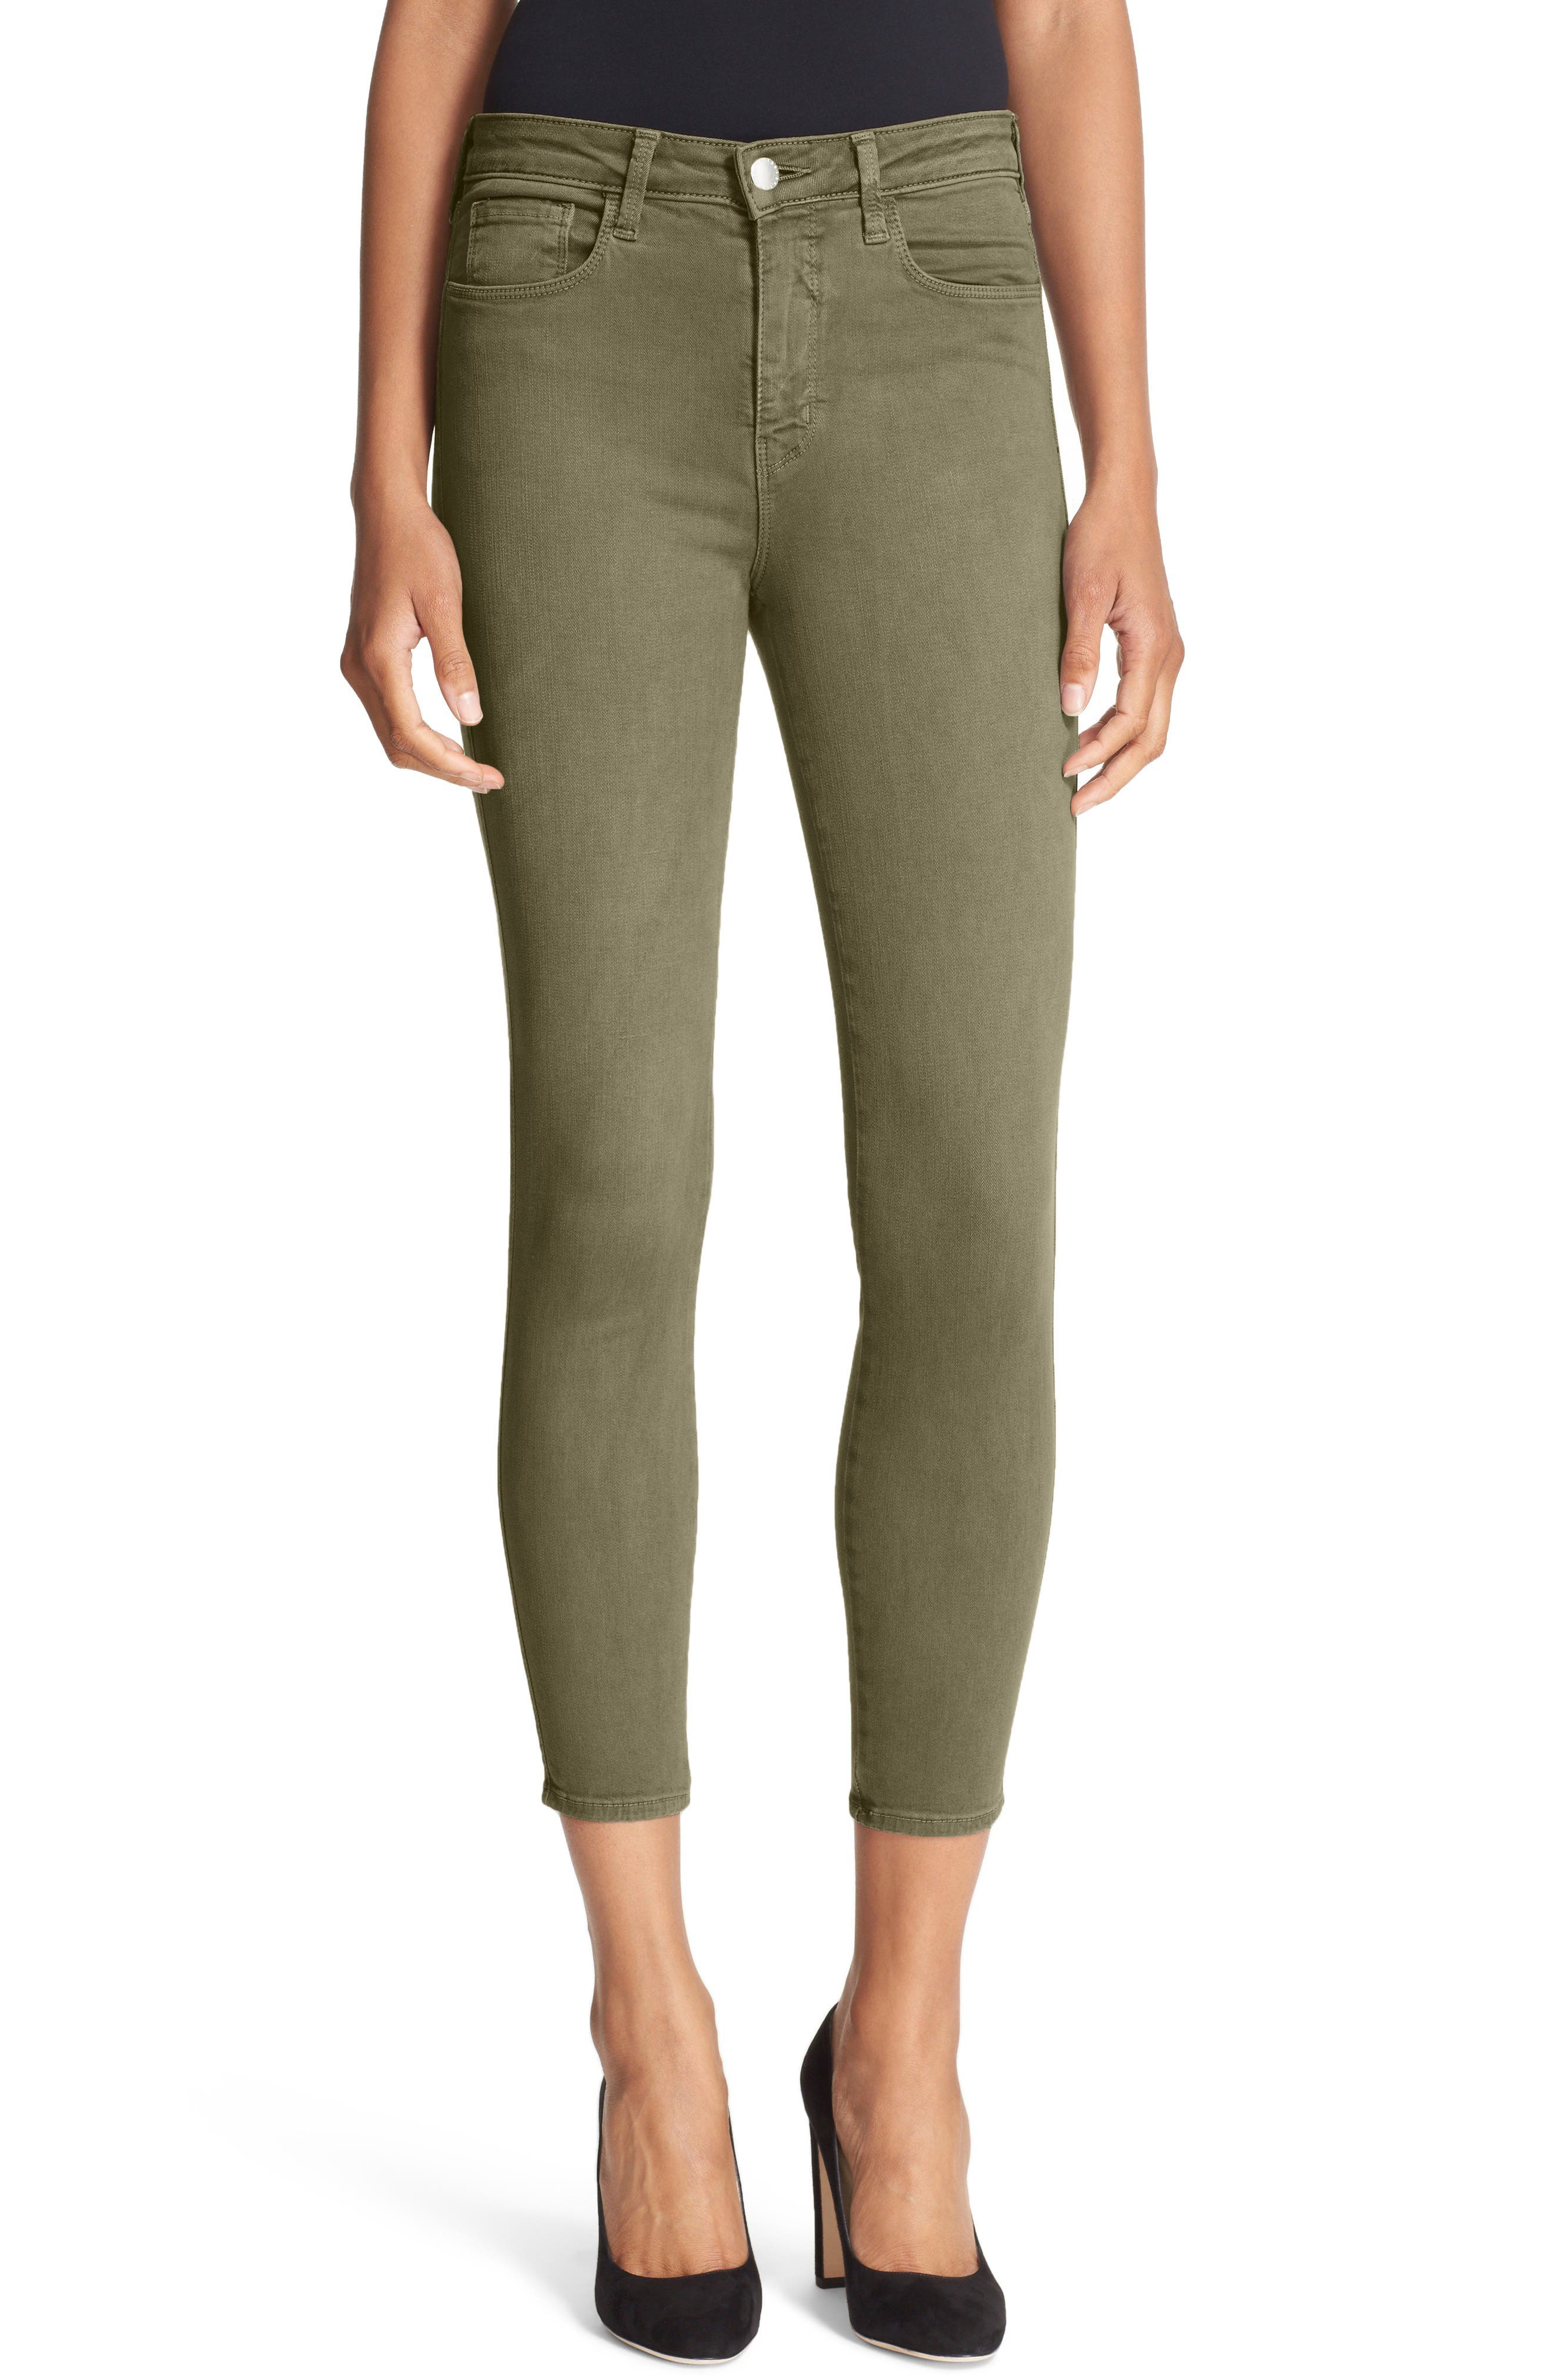 Alternate Image 1 Selected - L'AGENCE High Waist Skinny Ankle Jeans